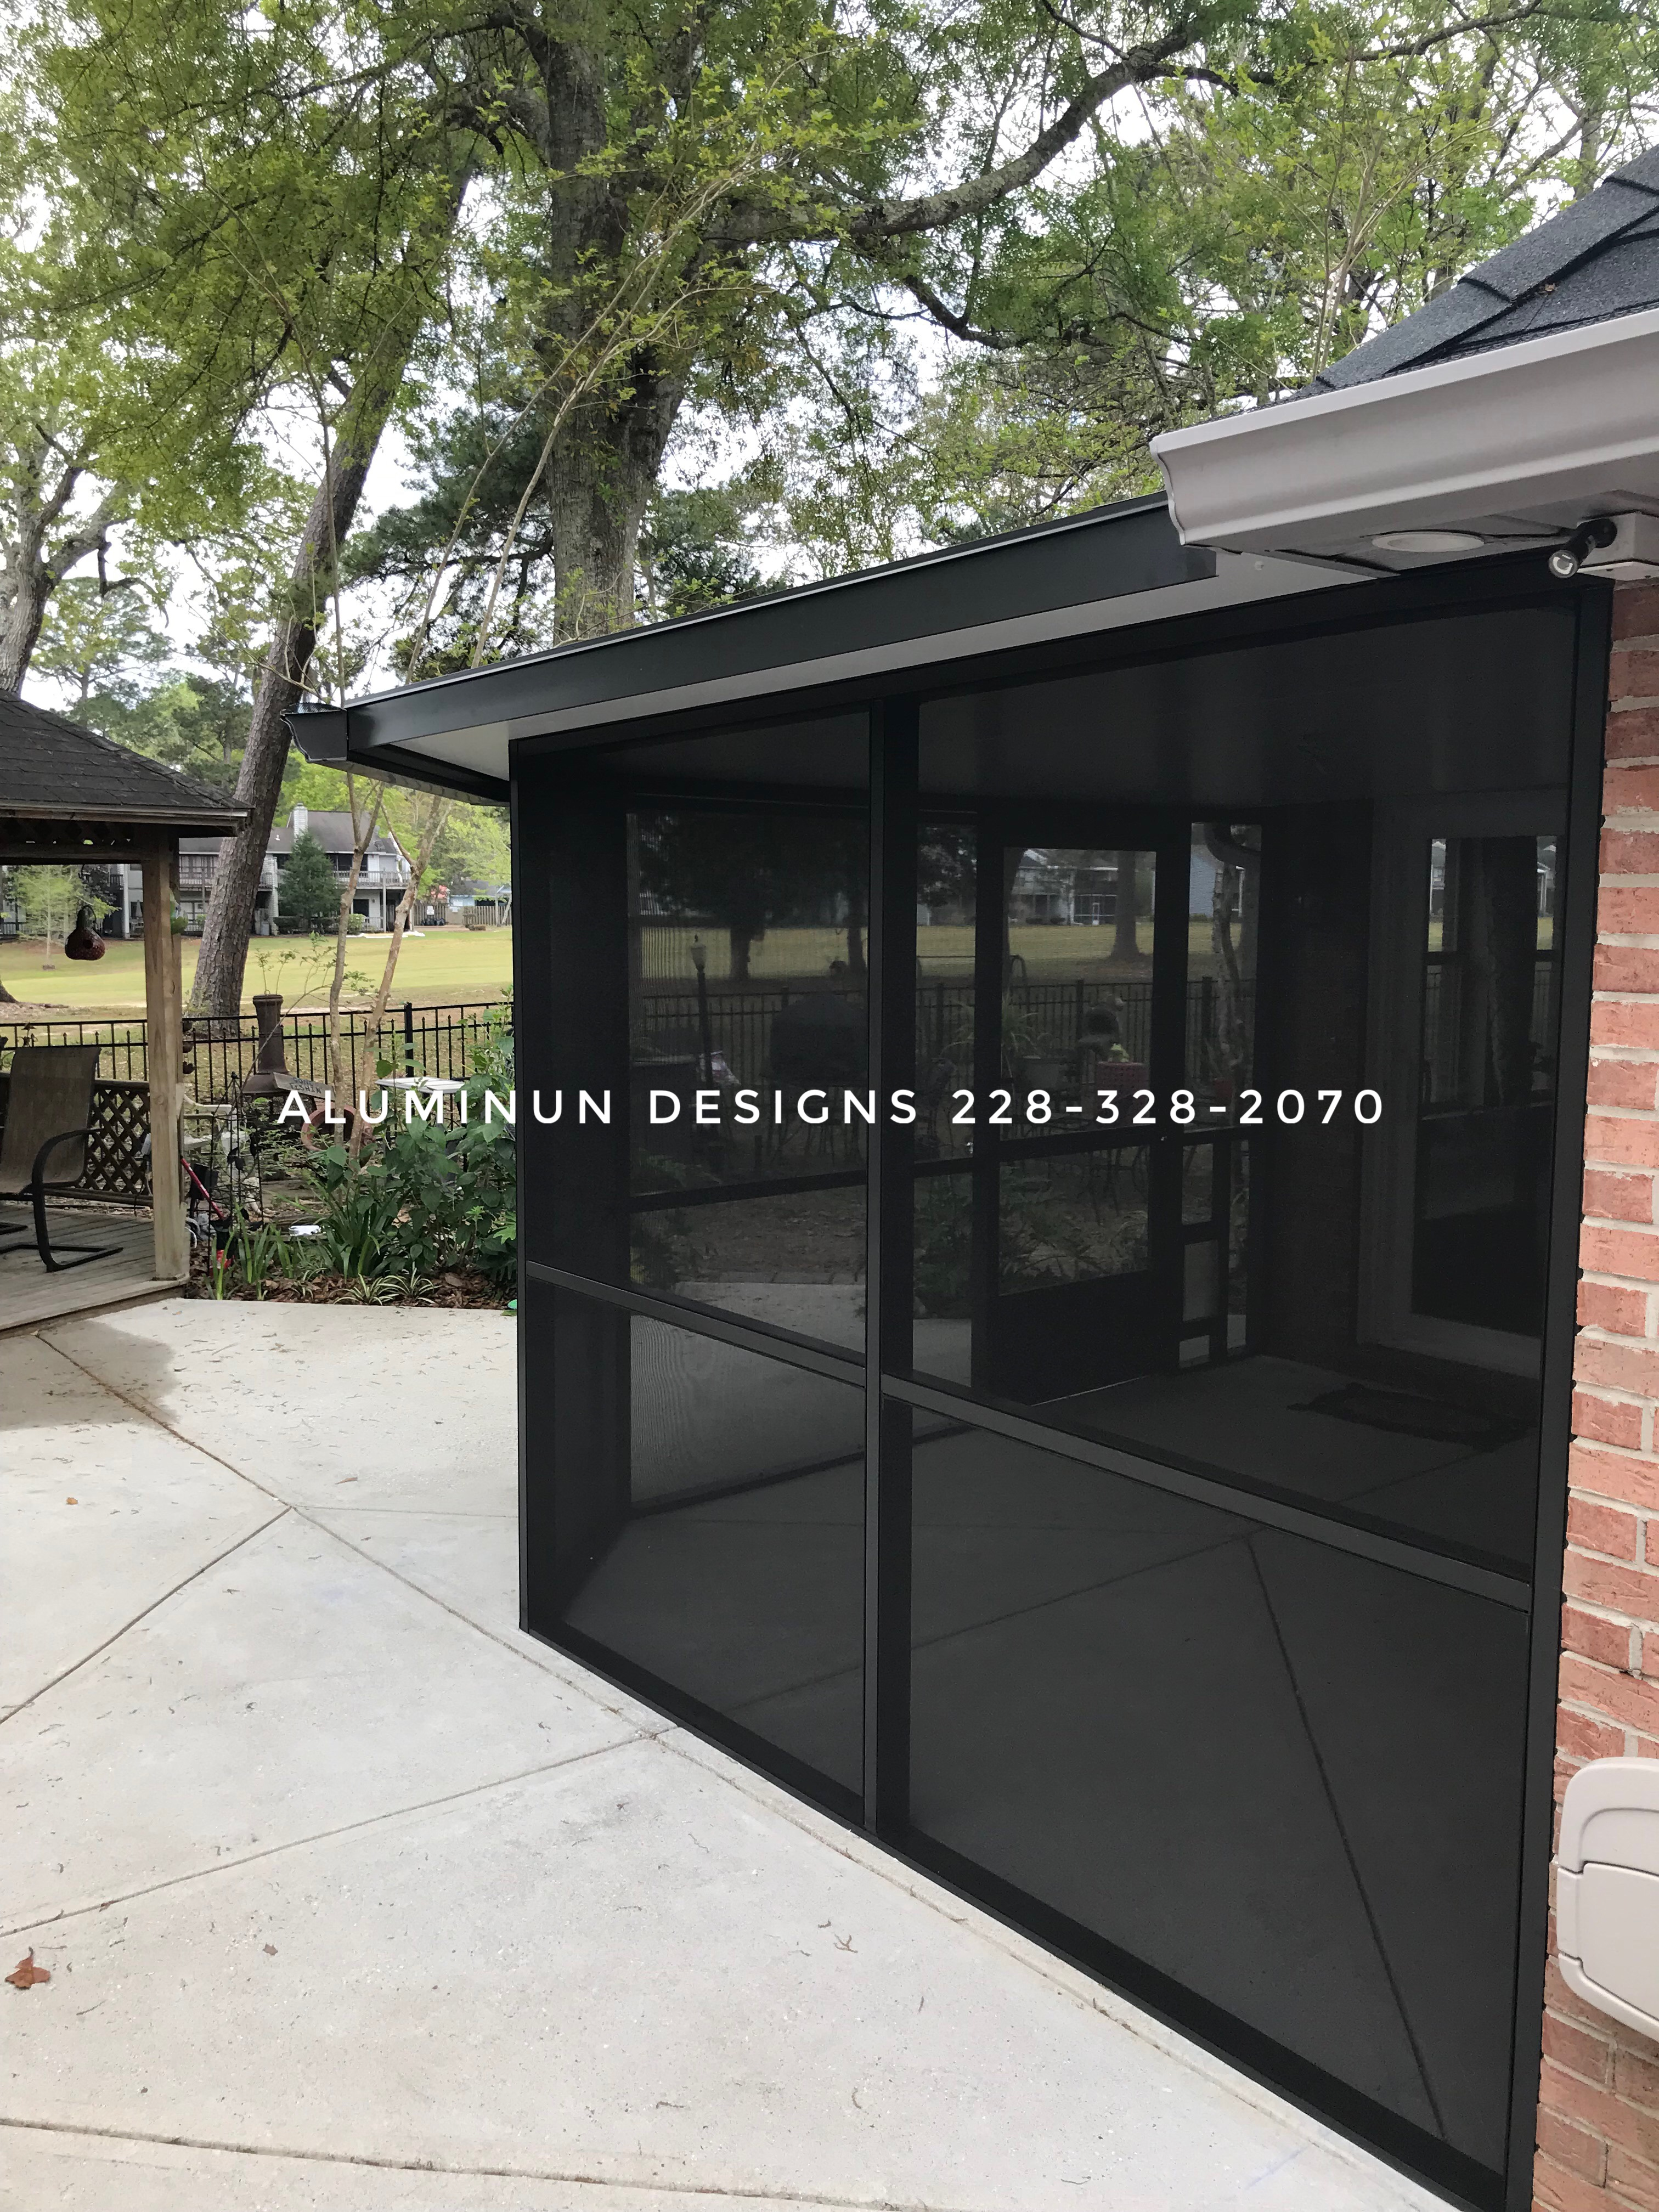 Insulated roof with screened patio eclosure from Aluminum Designs of Saucier, MS.